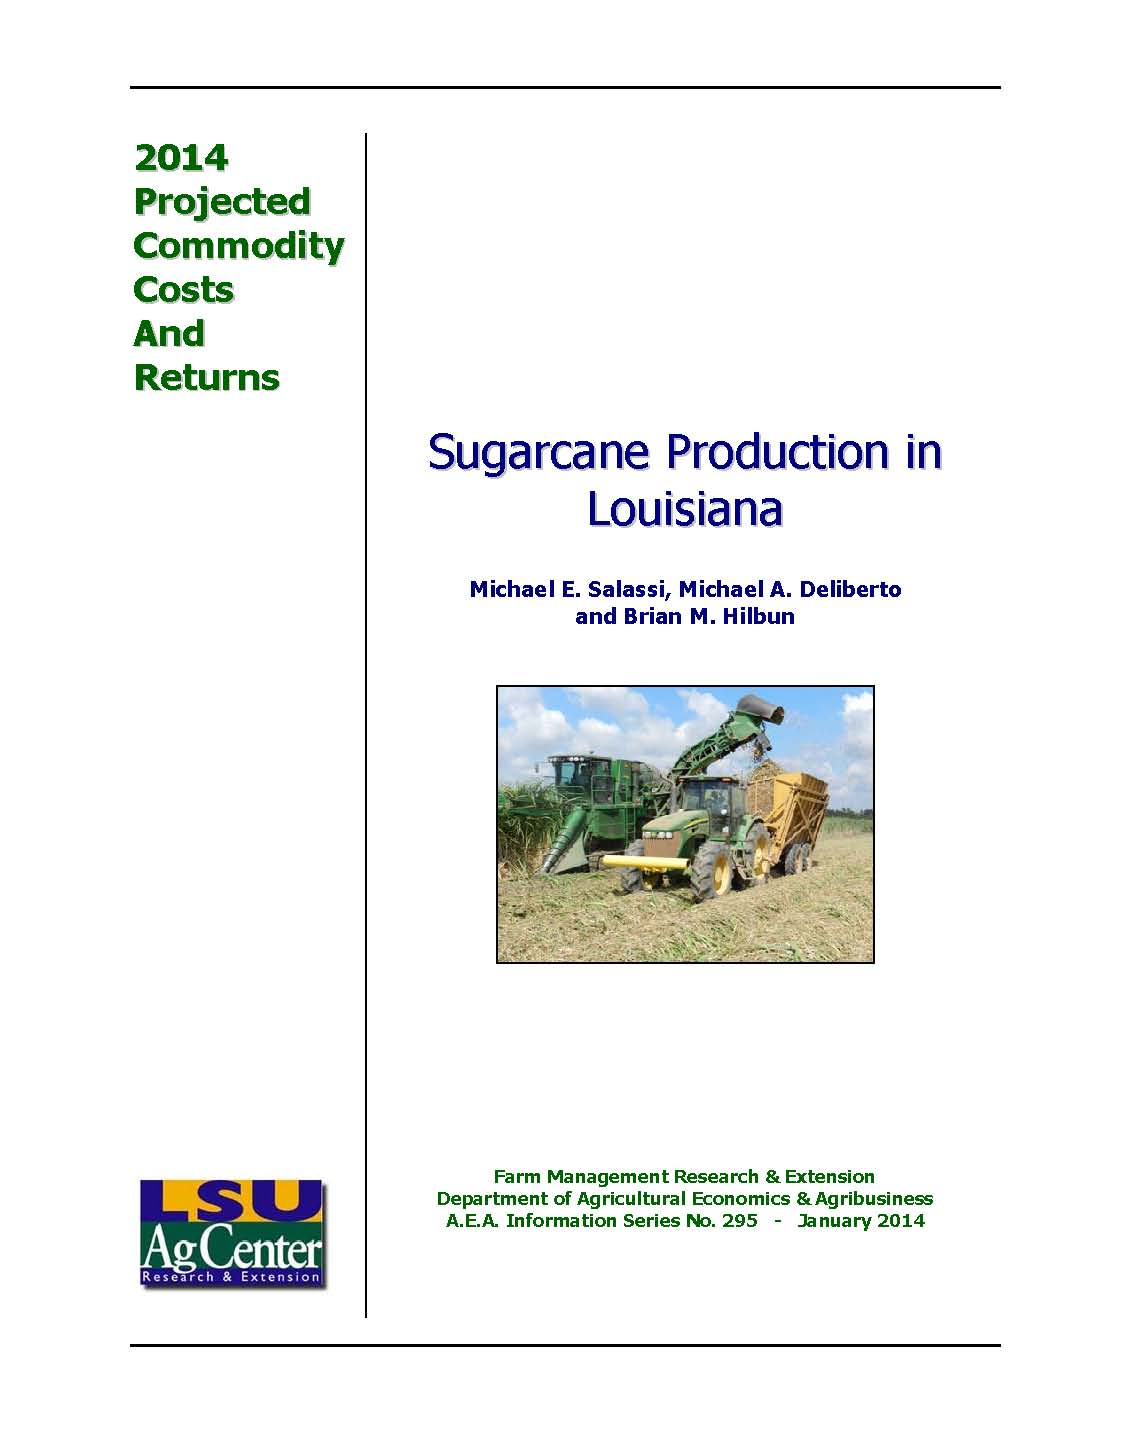 2014 Projected Sugarcane Production Costs